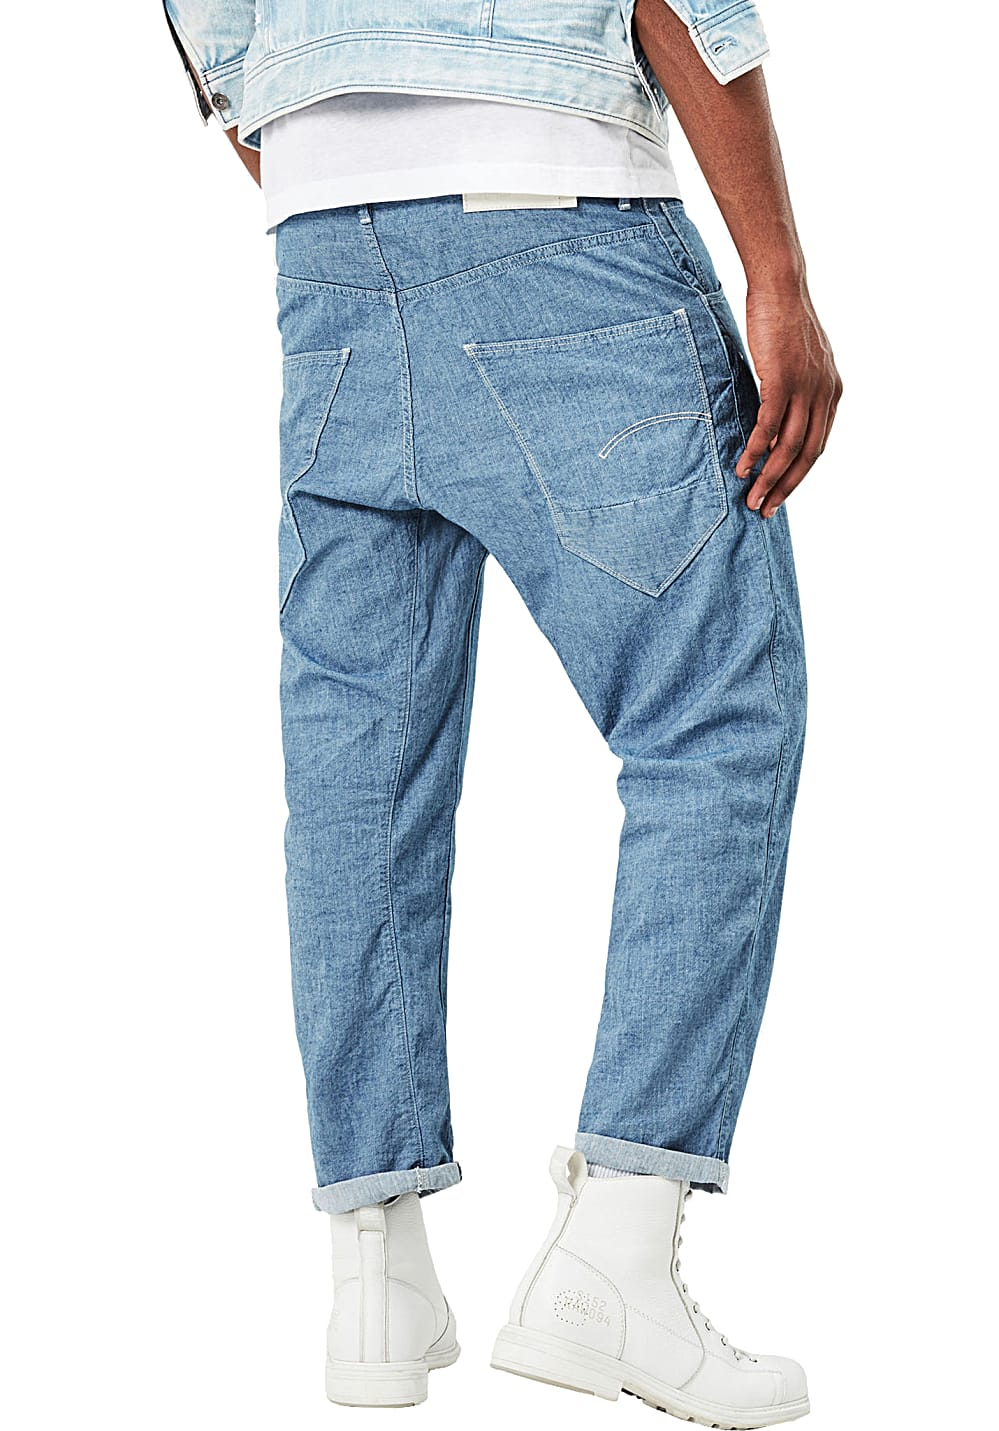 Blau Planet Raw Für Star 78 3dapered Jeans G Sports Arc Herren bgvf6Y7y